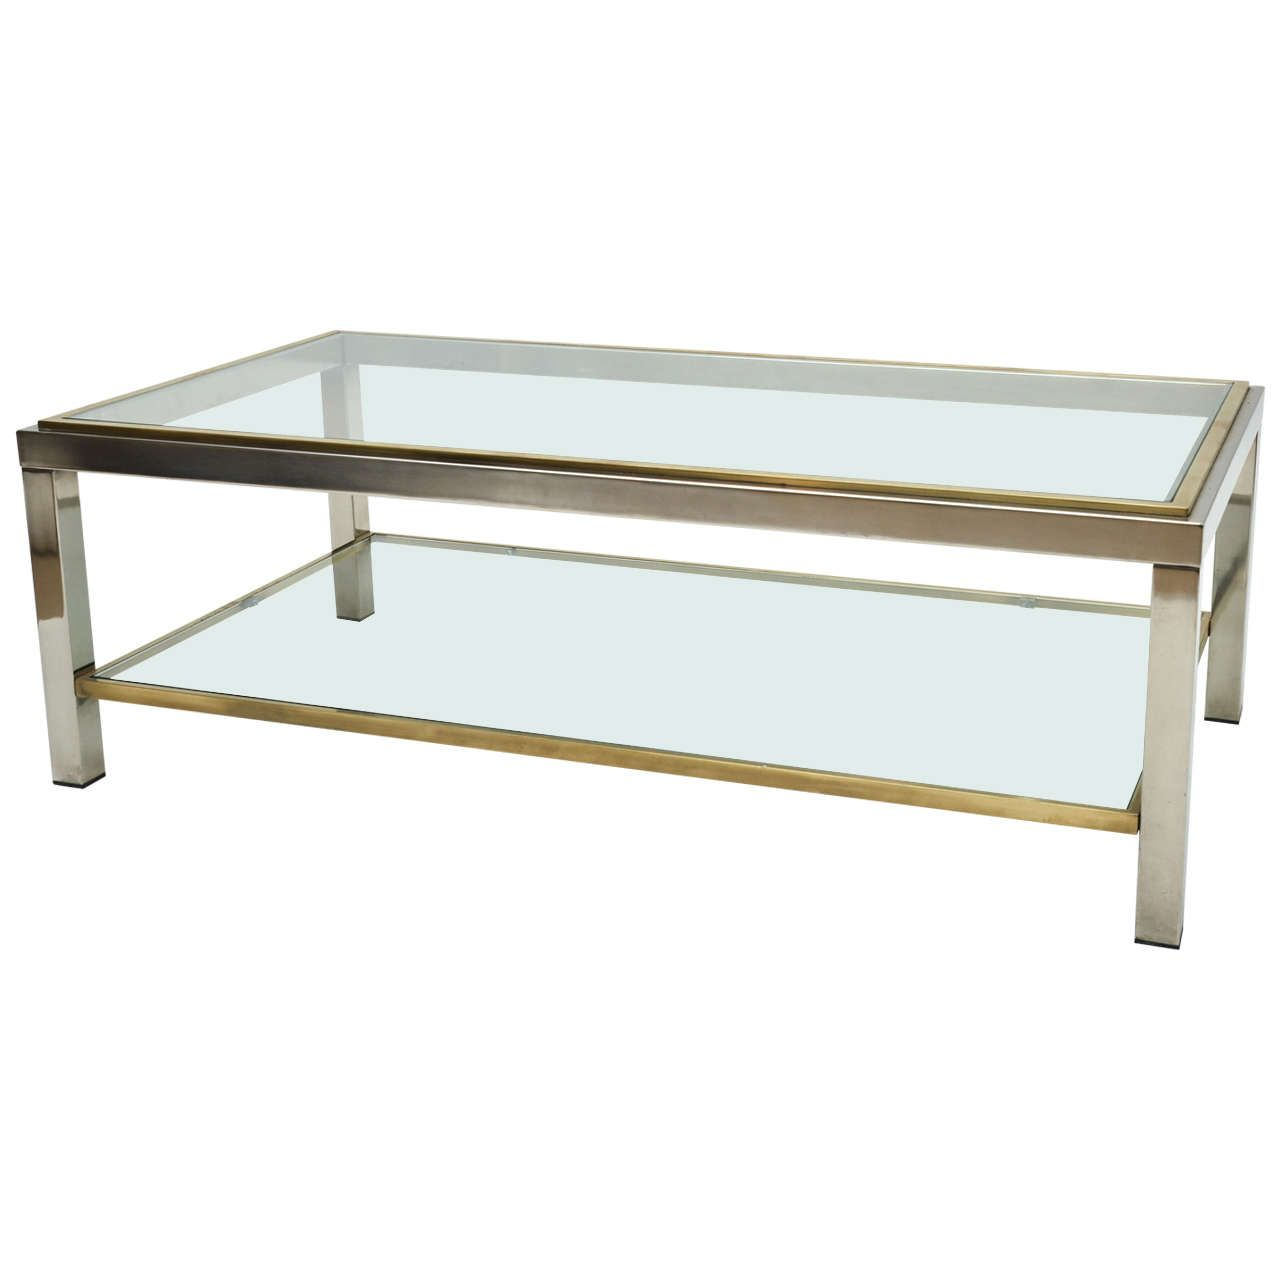 Mid century modern french brass and chrome glass coffee table mid century modern french brass and chrome glass coffee table geotapseo Choice Image